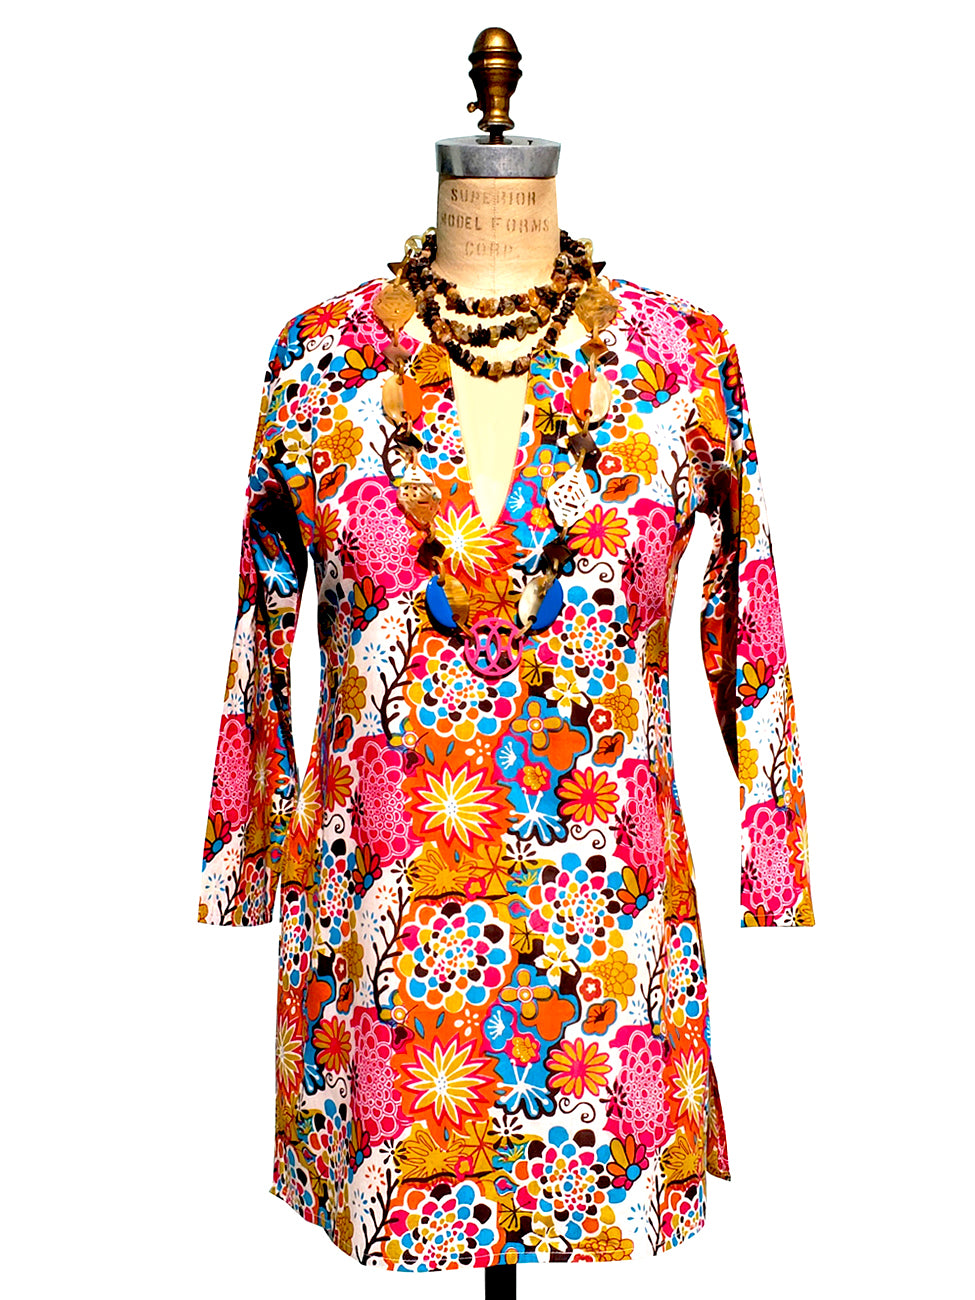 Raja Cotton Tunic Flower Power